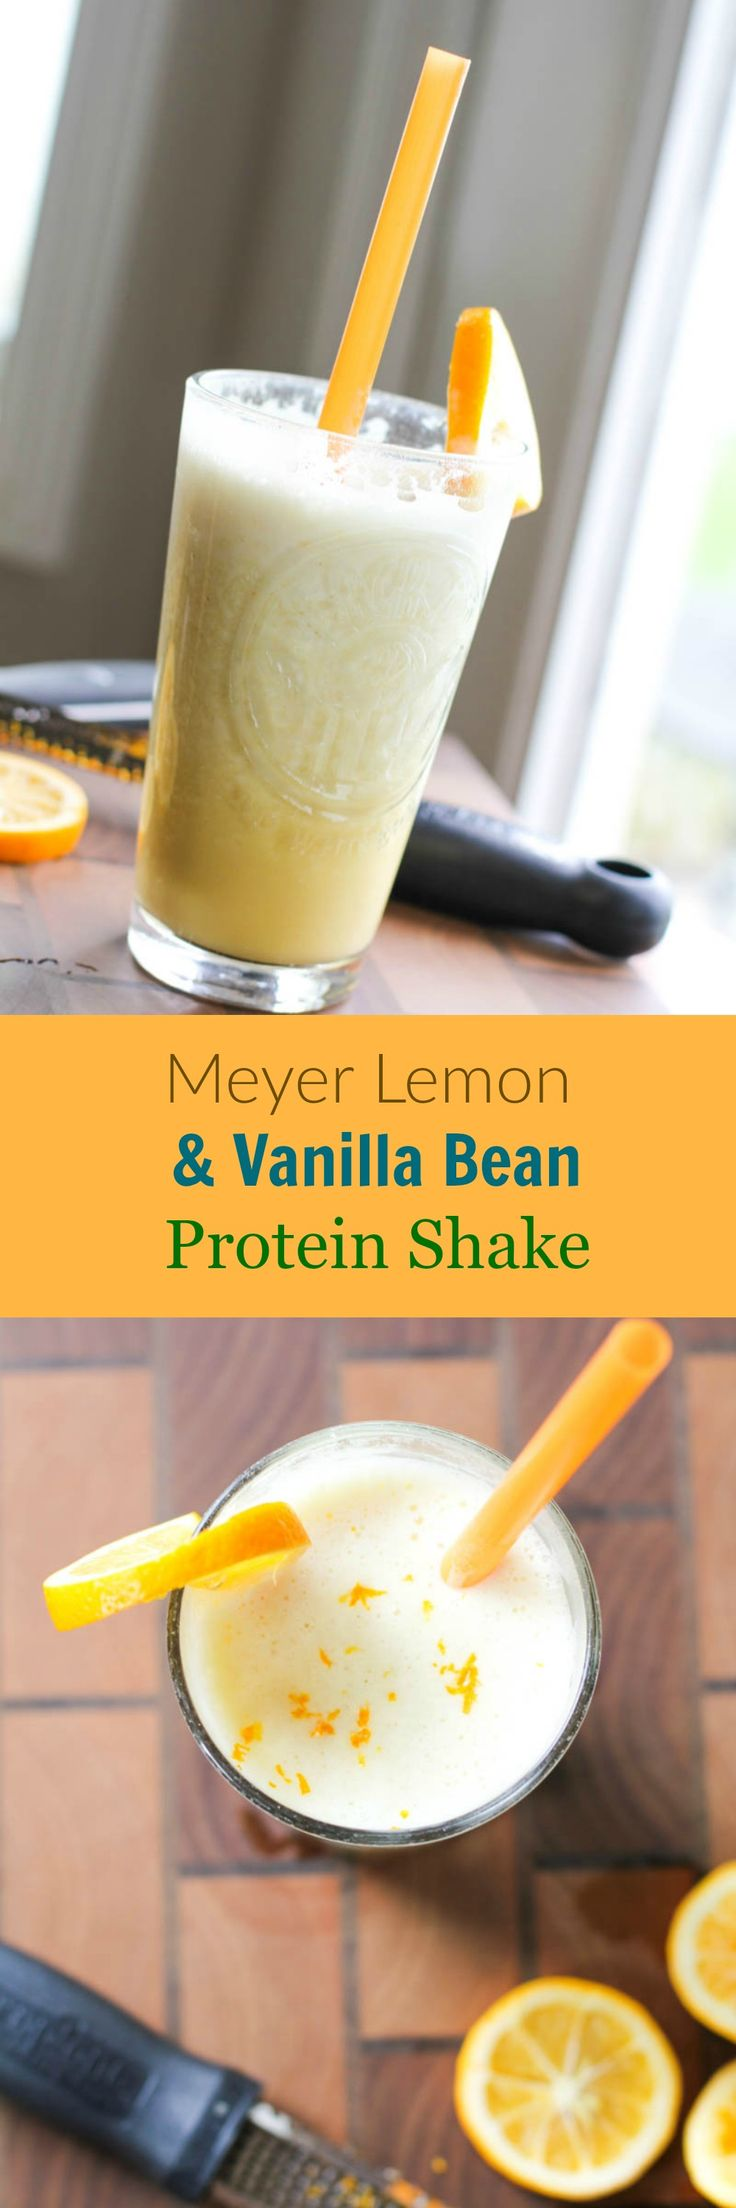 Meyer Lemon and Vanilla Bean Protein Shake | juliesjazz.com